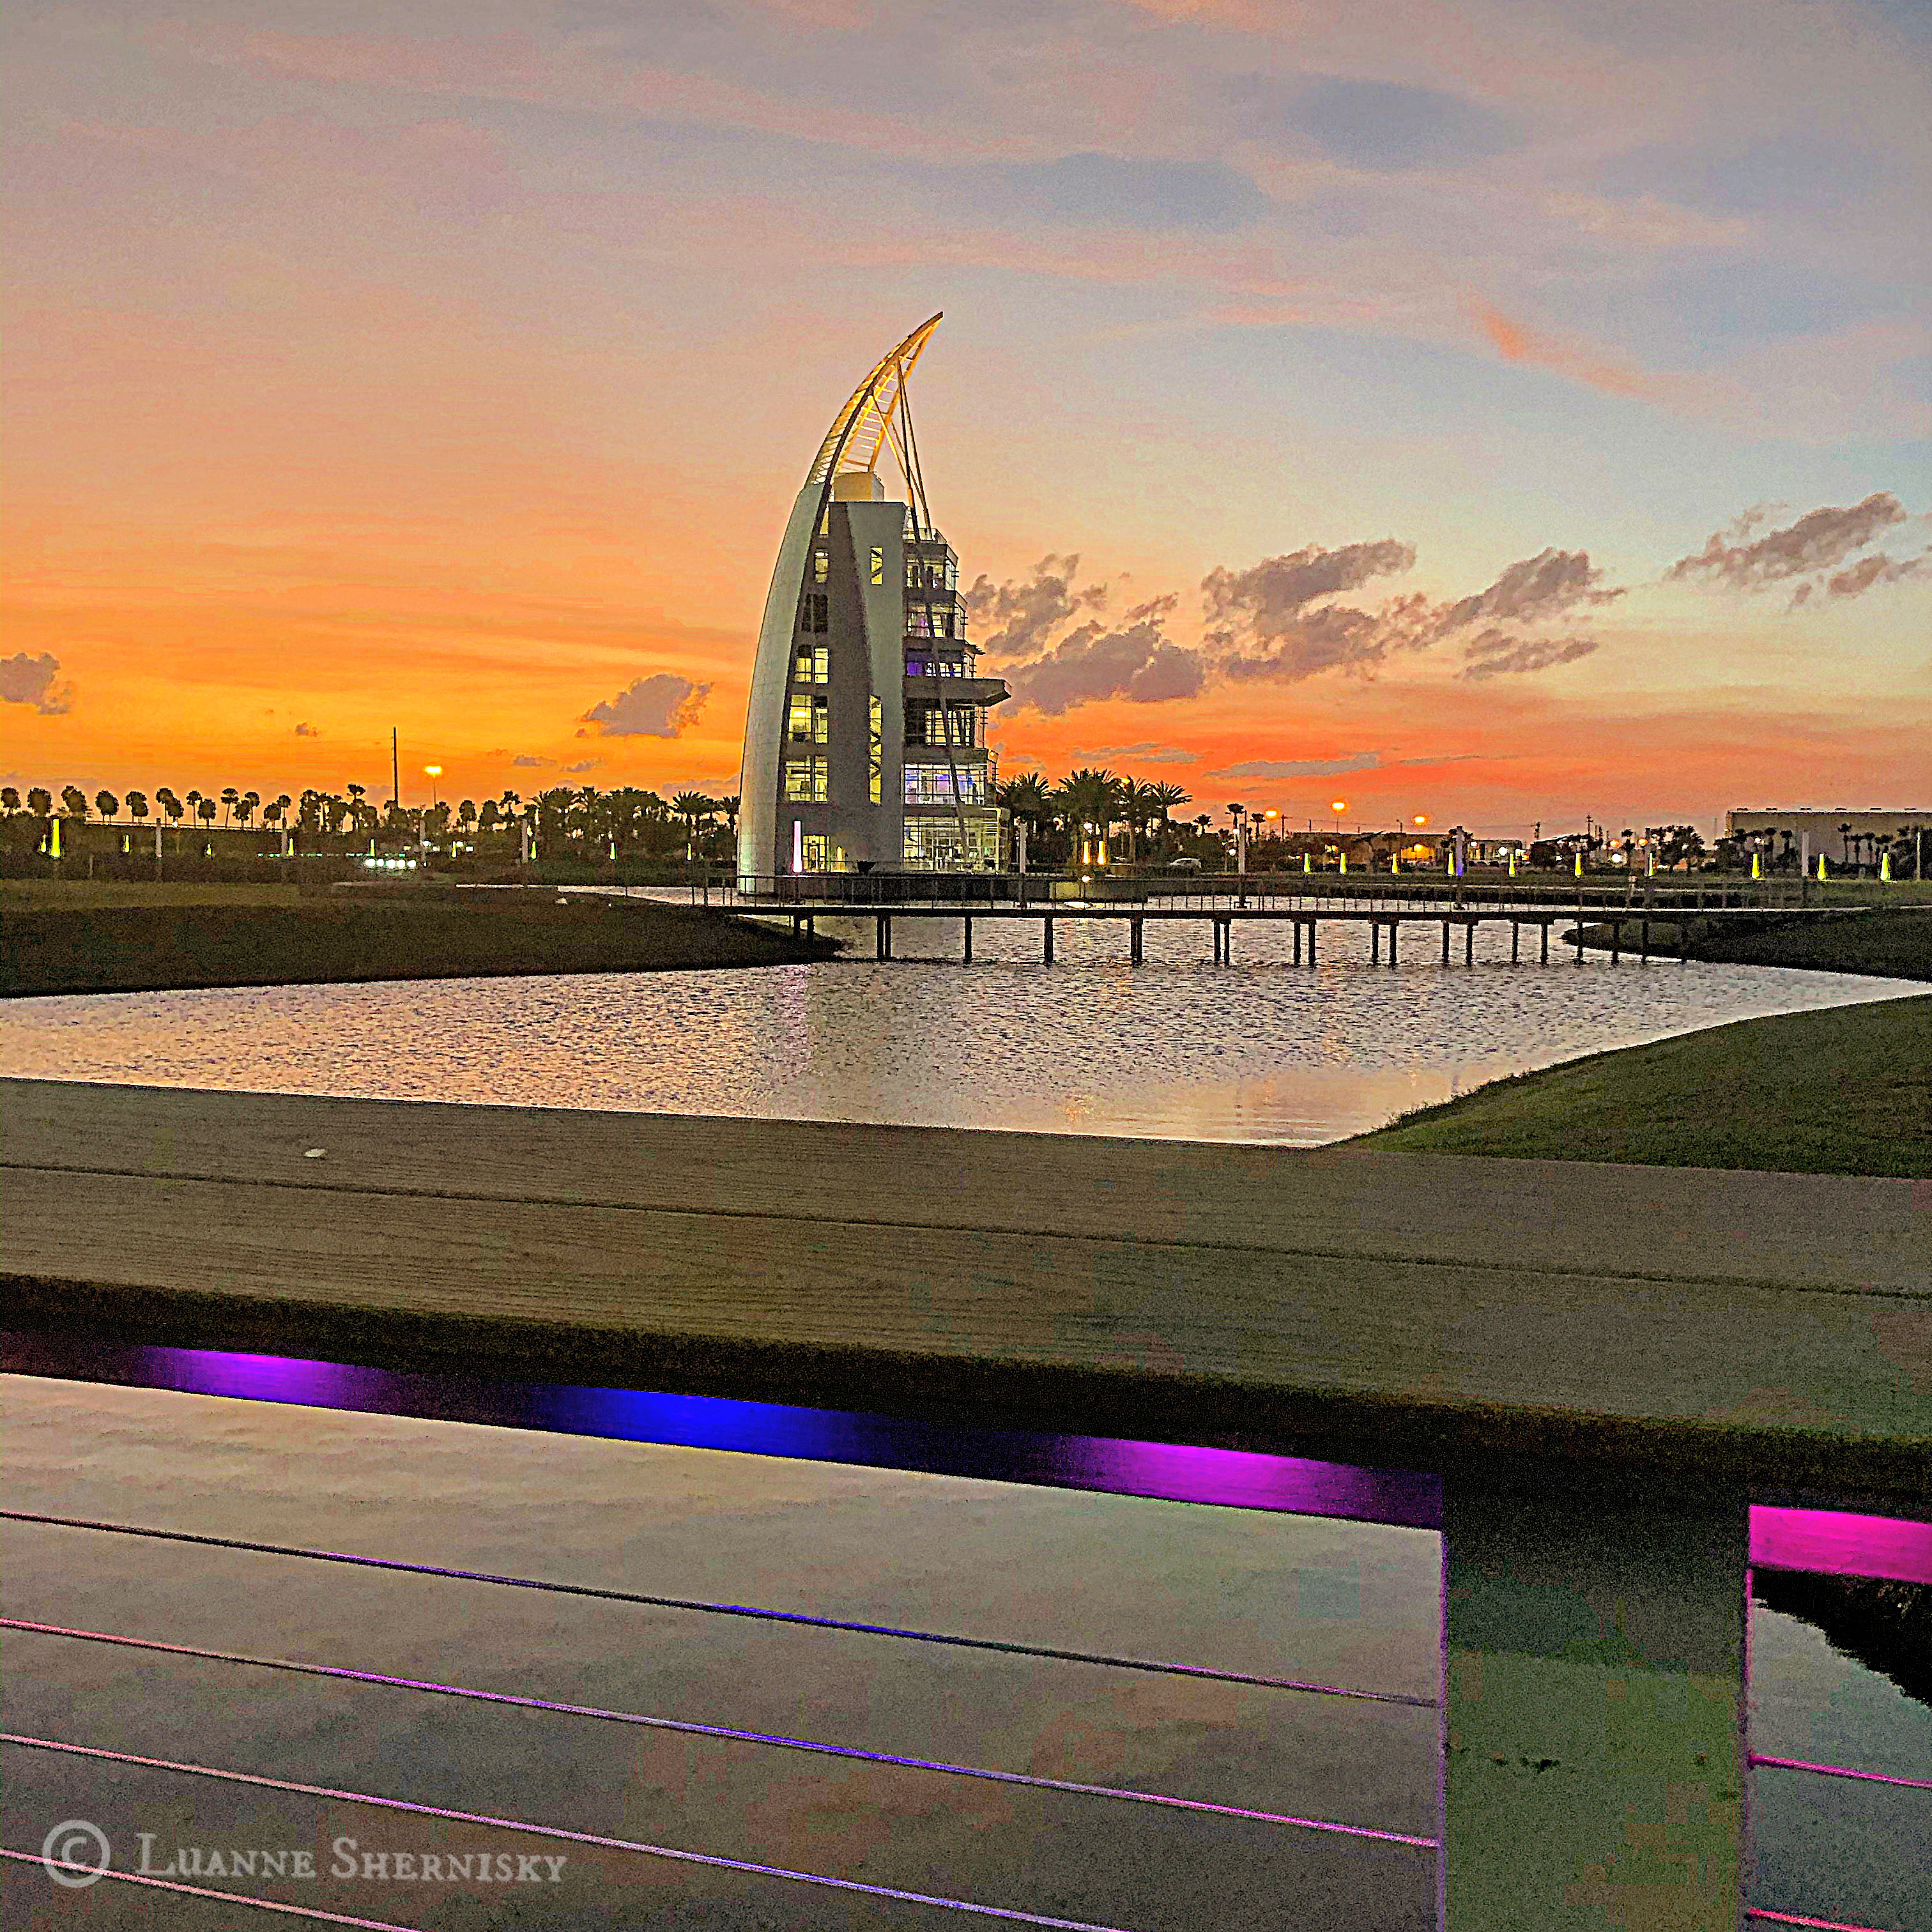 Exploration Tower in Port Canaveral, with beautiful sunset in background.